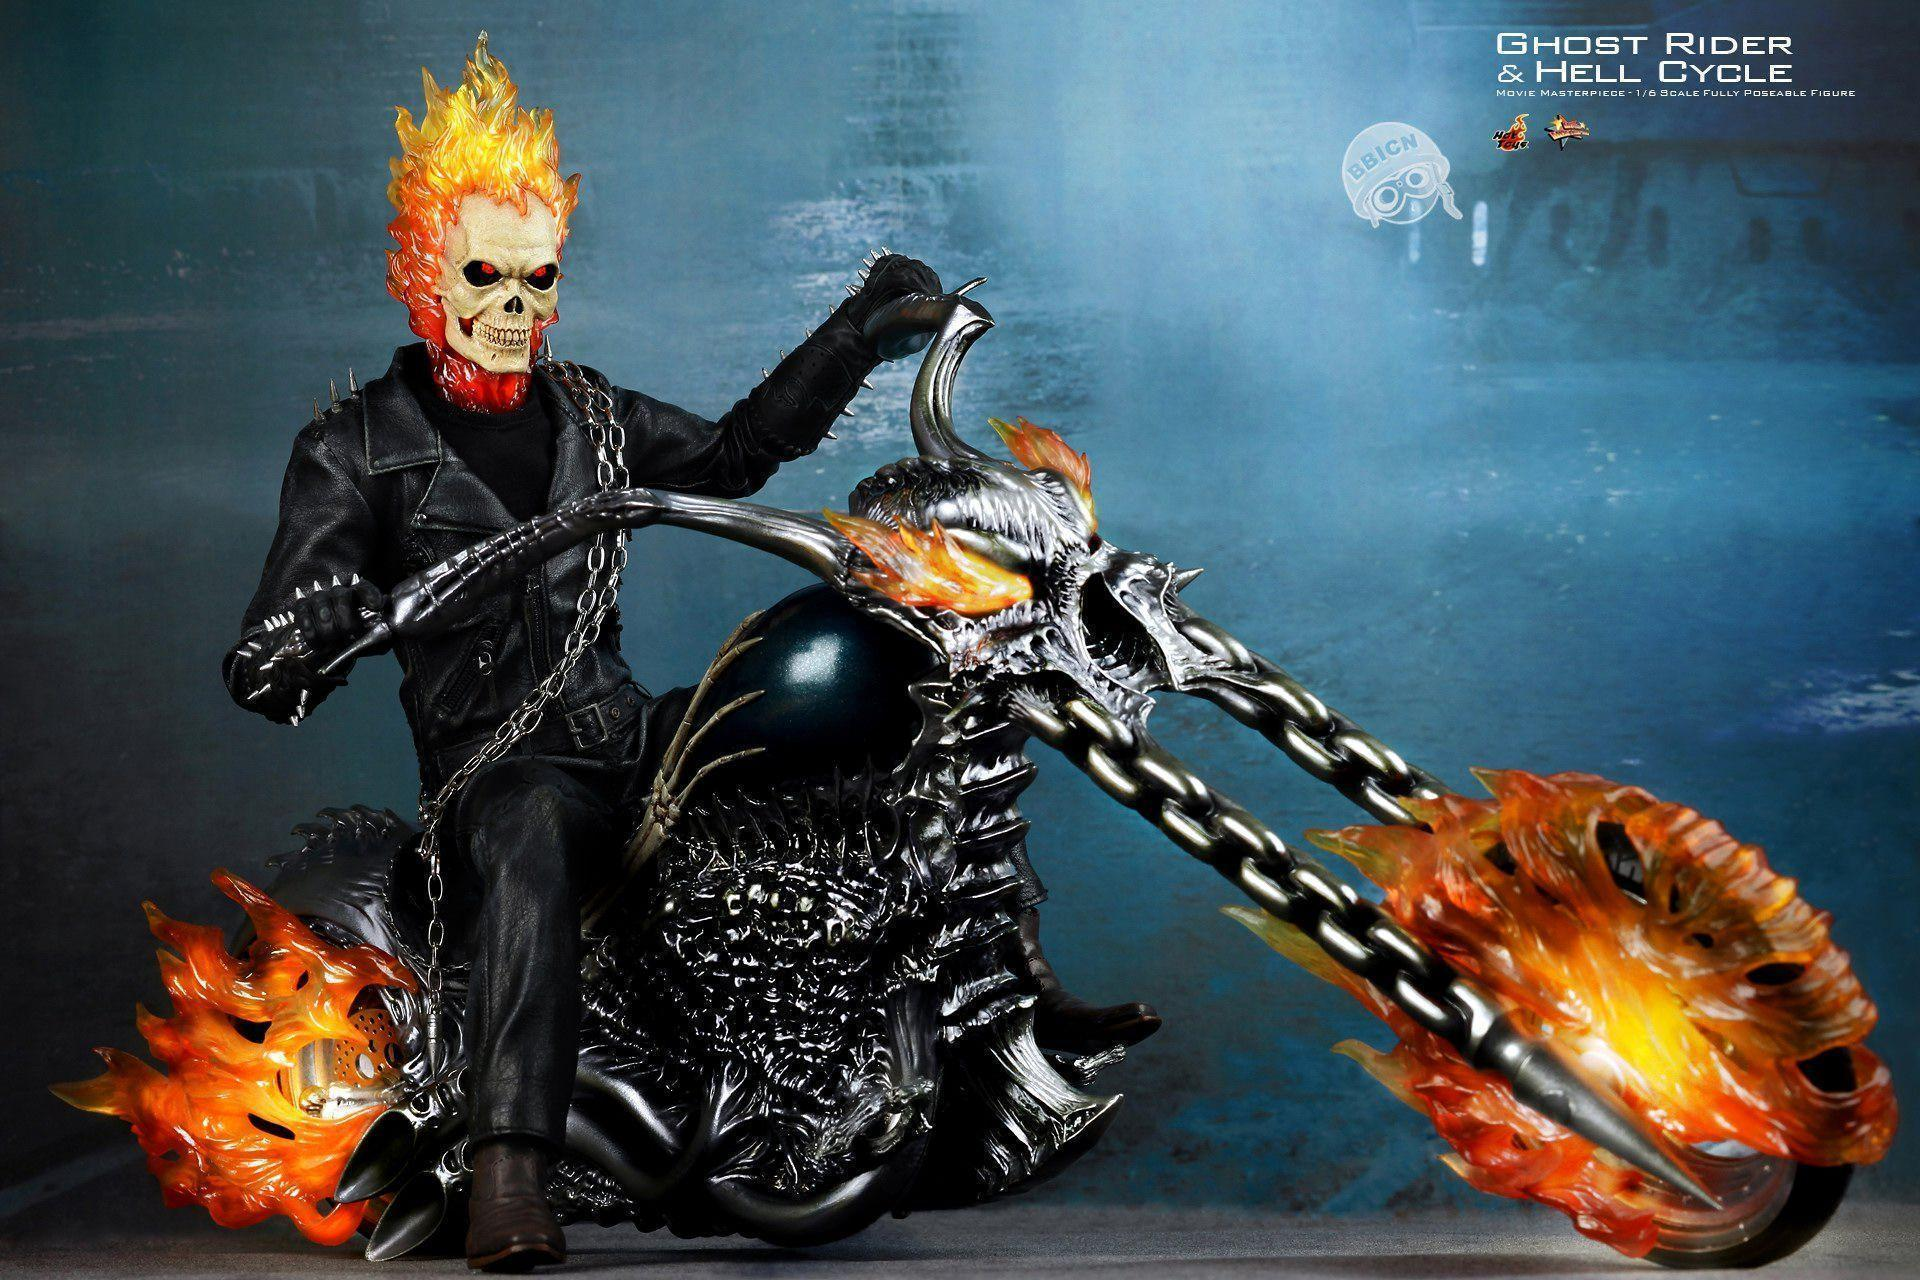 ghost rider wallpaper bike - photo #4